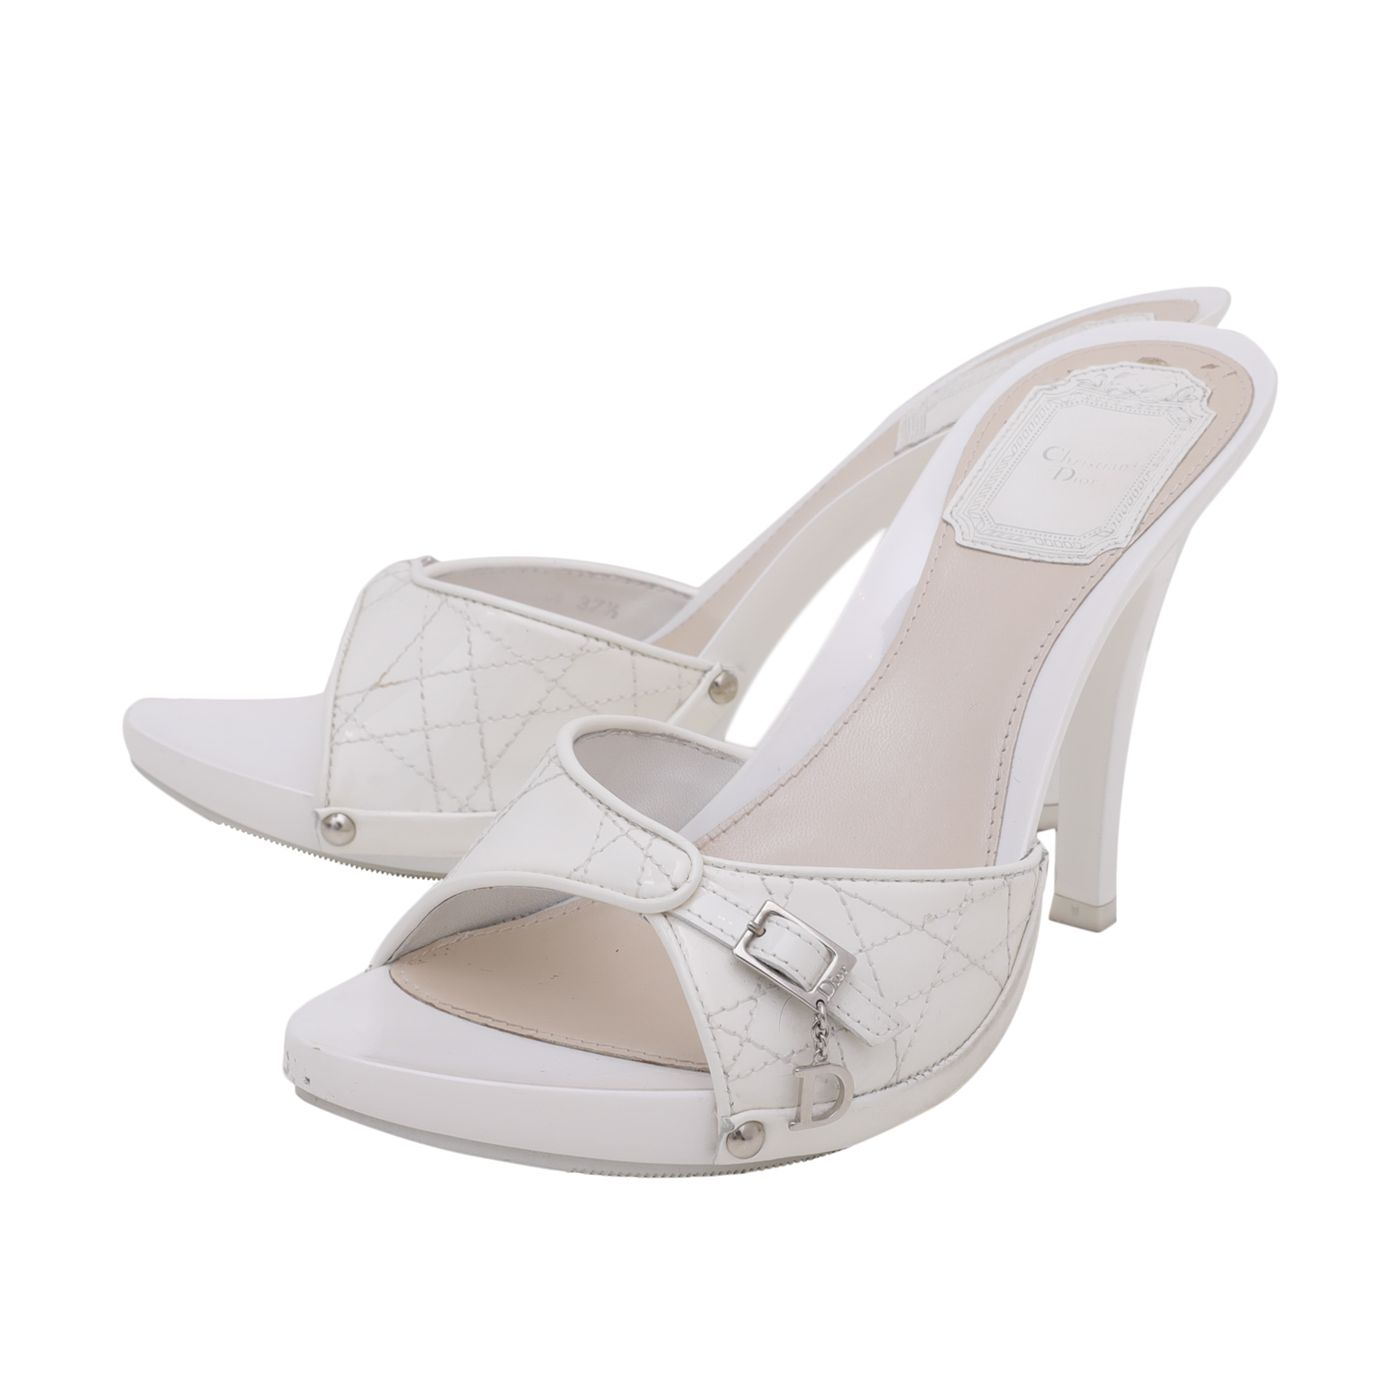 Christian Dior White Cannage Clog 10cm Sandals 37.5